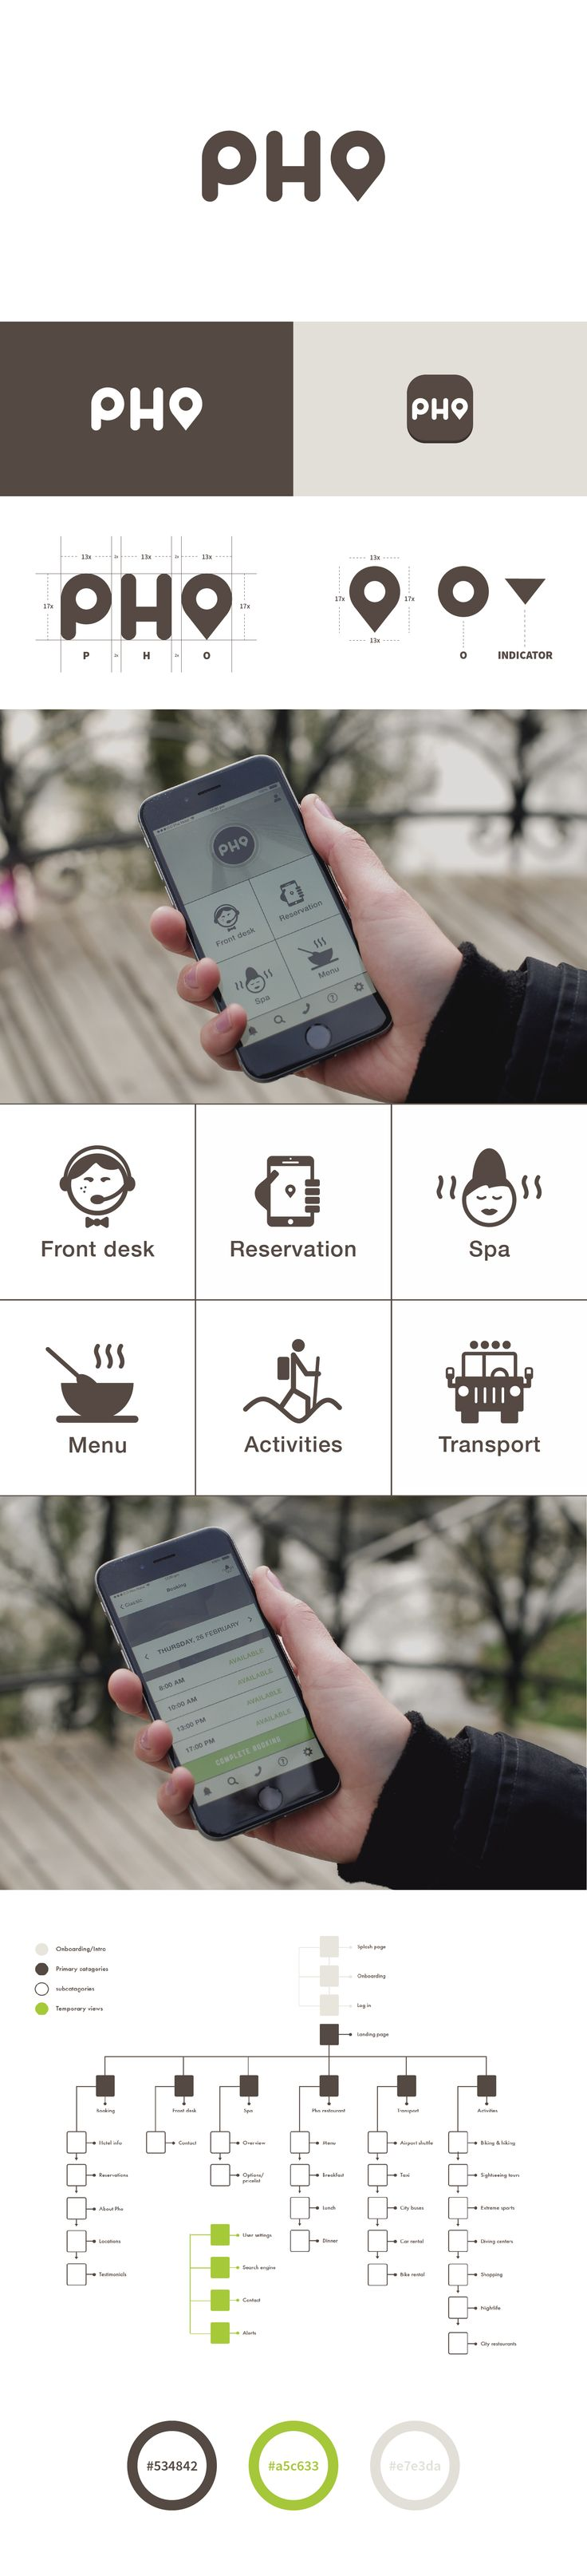 The app that gives you access to all hotel services and amenities. No more pen and paper. Booking made easy.  Pho Hotel UX/UI - APP Prototyping, wireframing, research, contextual inquiry, user personas, questionnaires, user testing, scenarios, graphic design, Identity and branding.